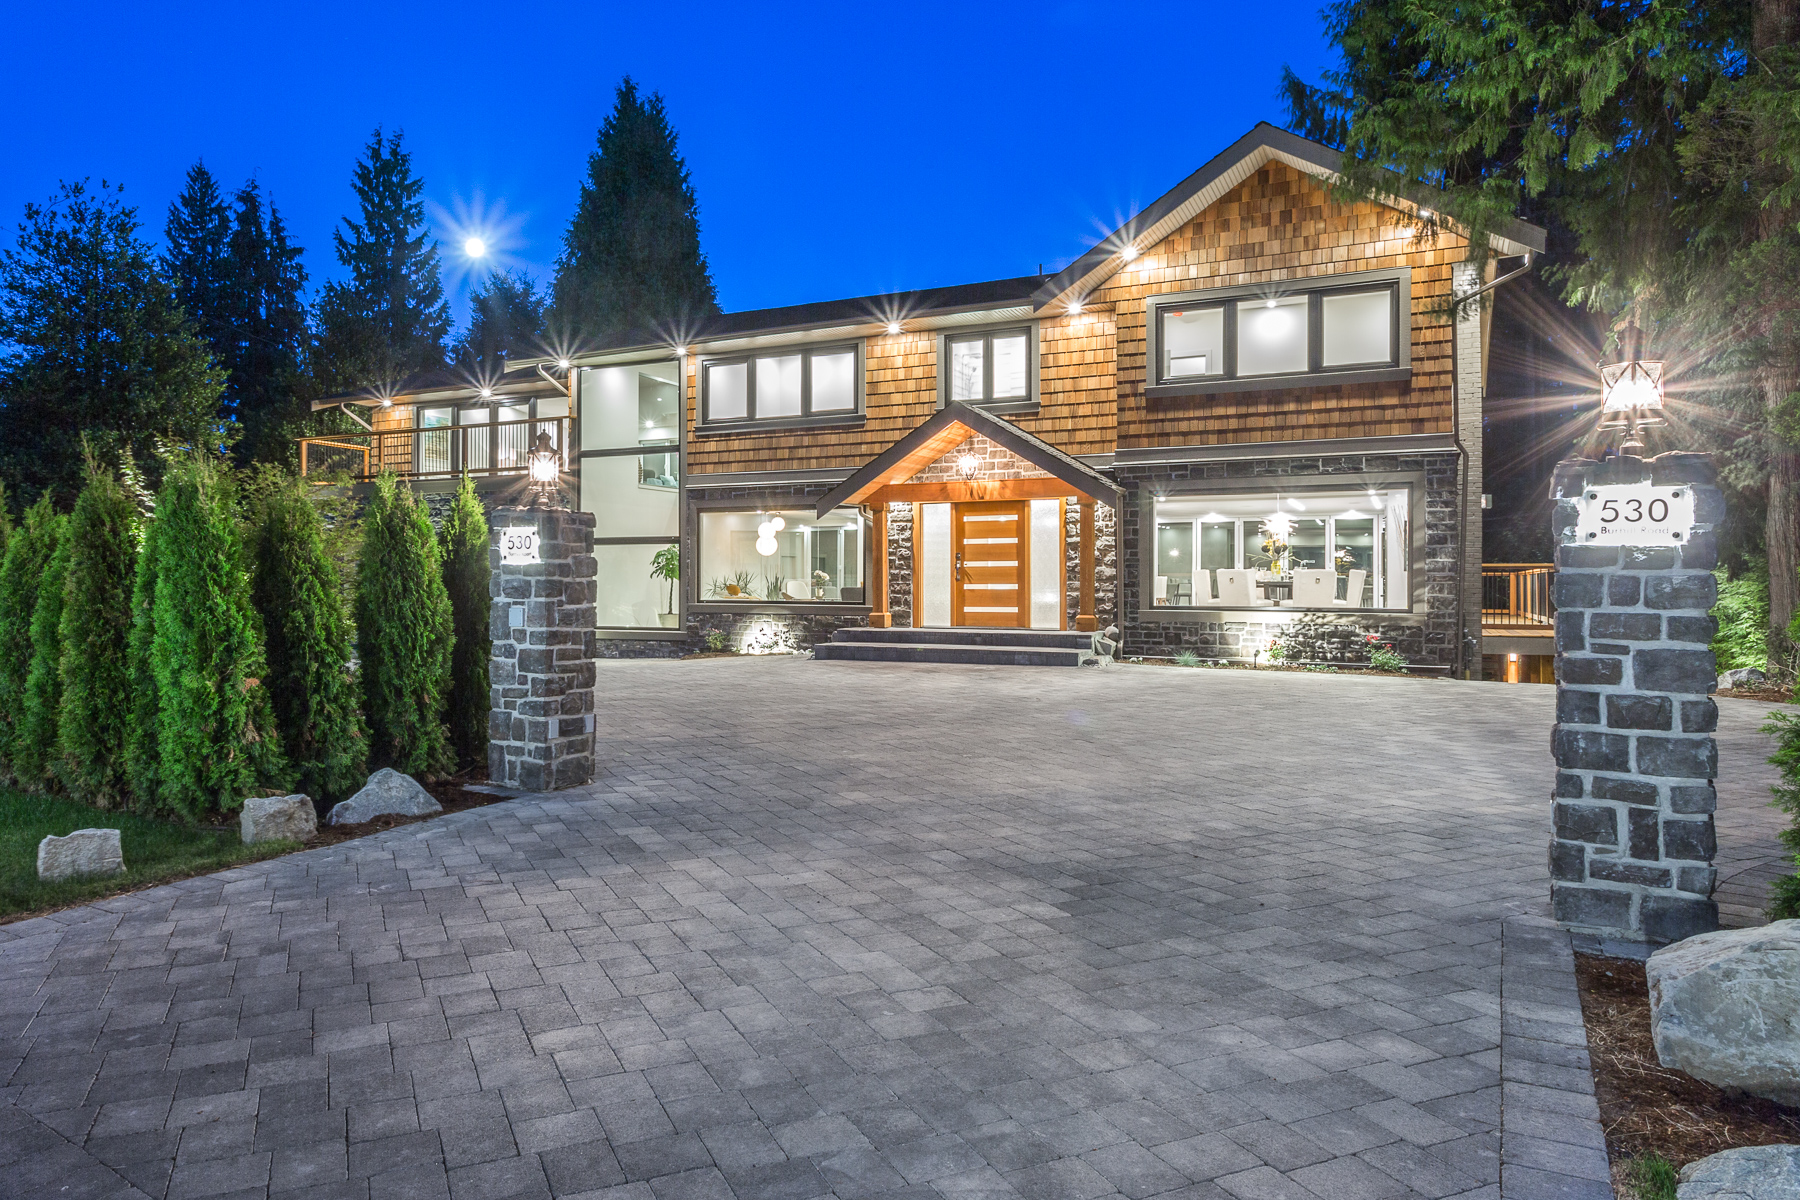 530-Burhill-Rd-West-Vancouver-360hometours-01s.jpg